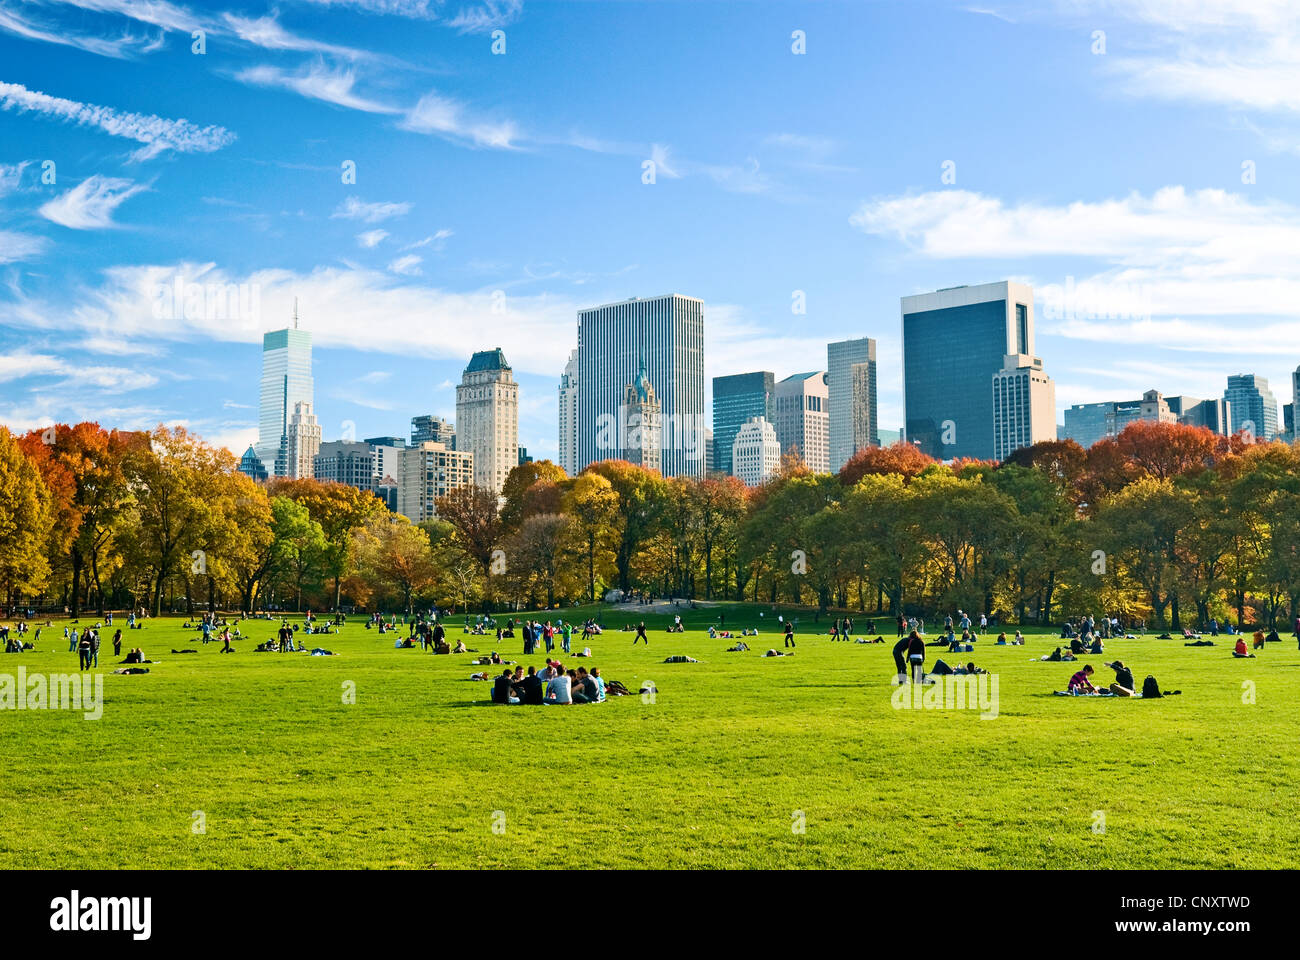 Central Park, New York City, in Autumn, looking towards the Central Park South Skyline from Sheep Meadow. - Stock Image